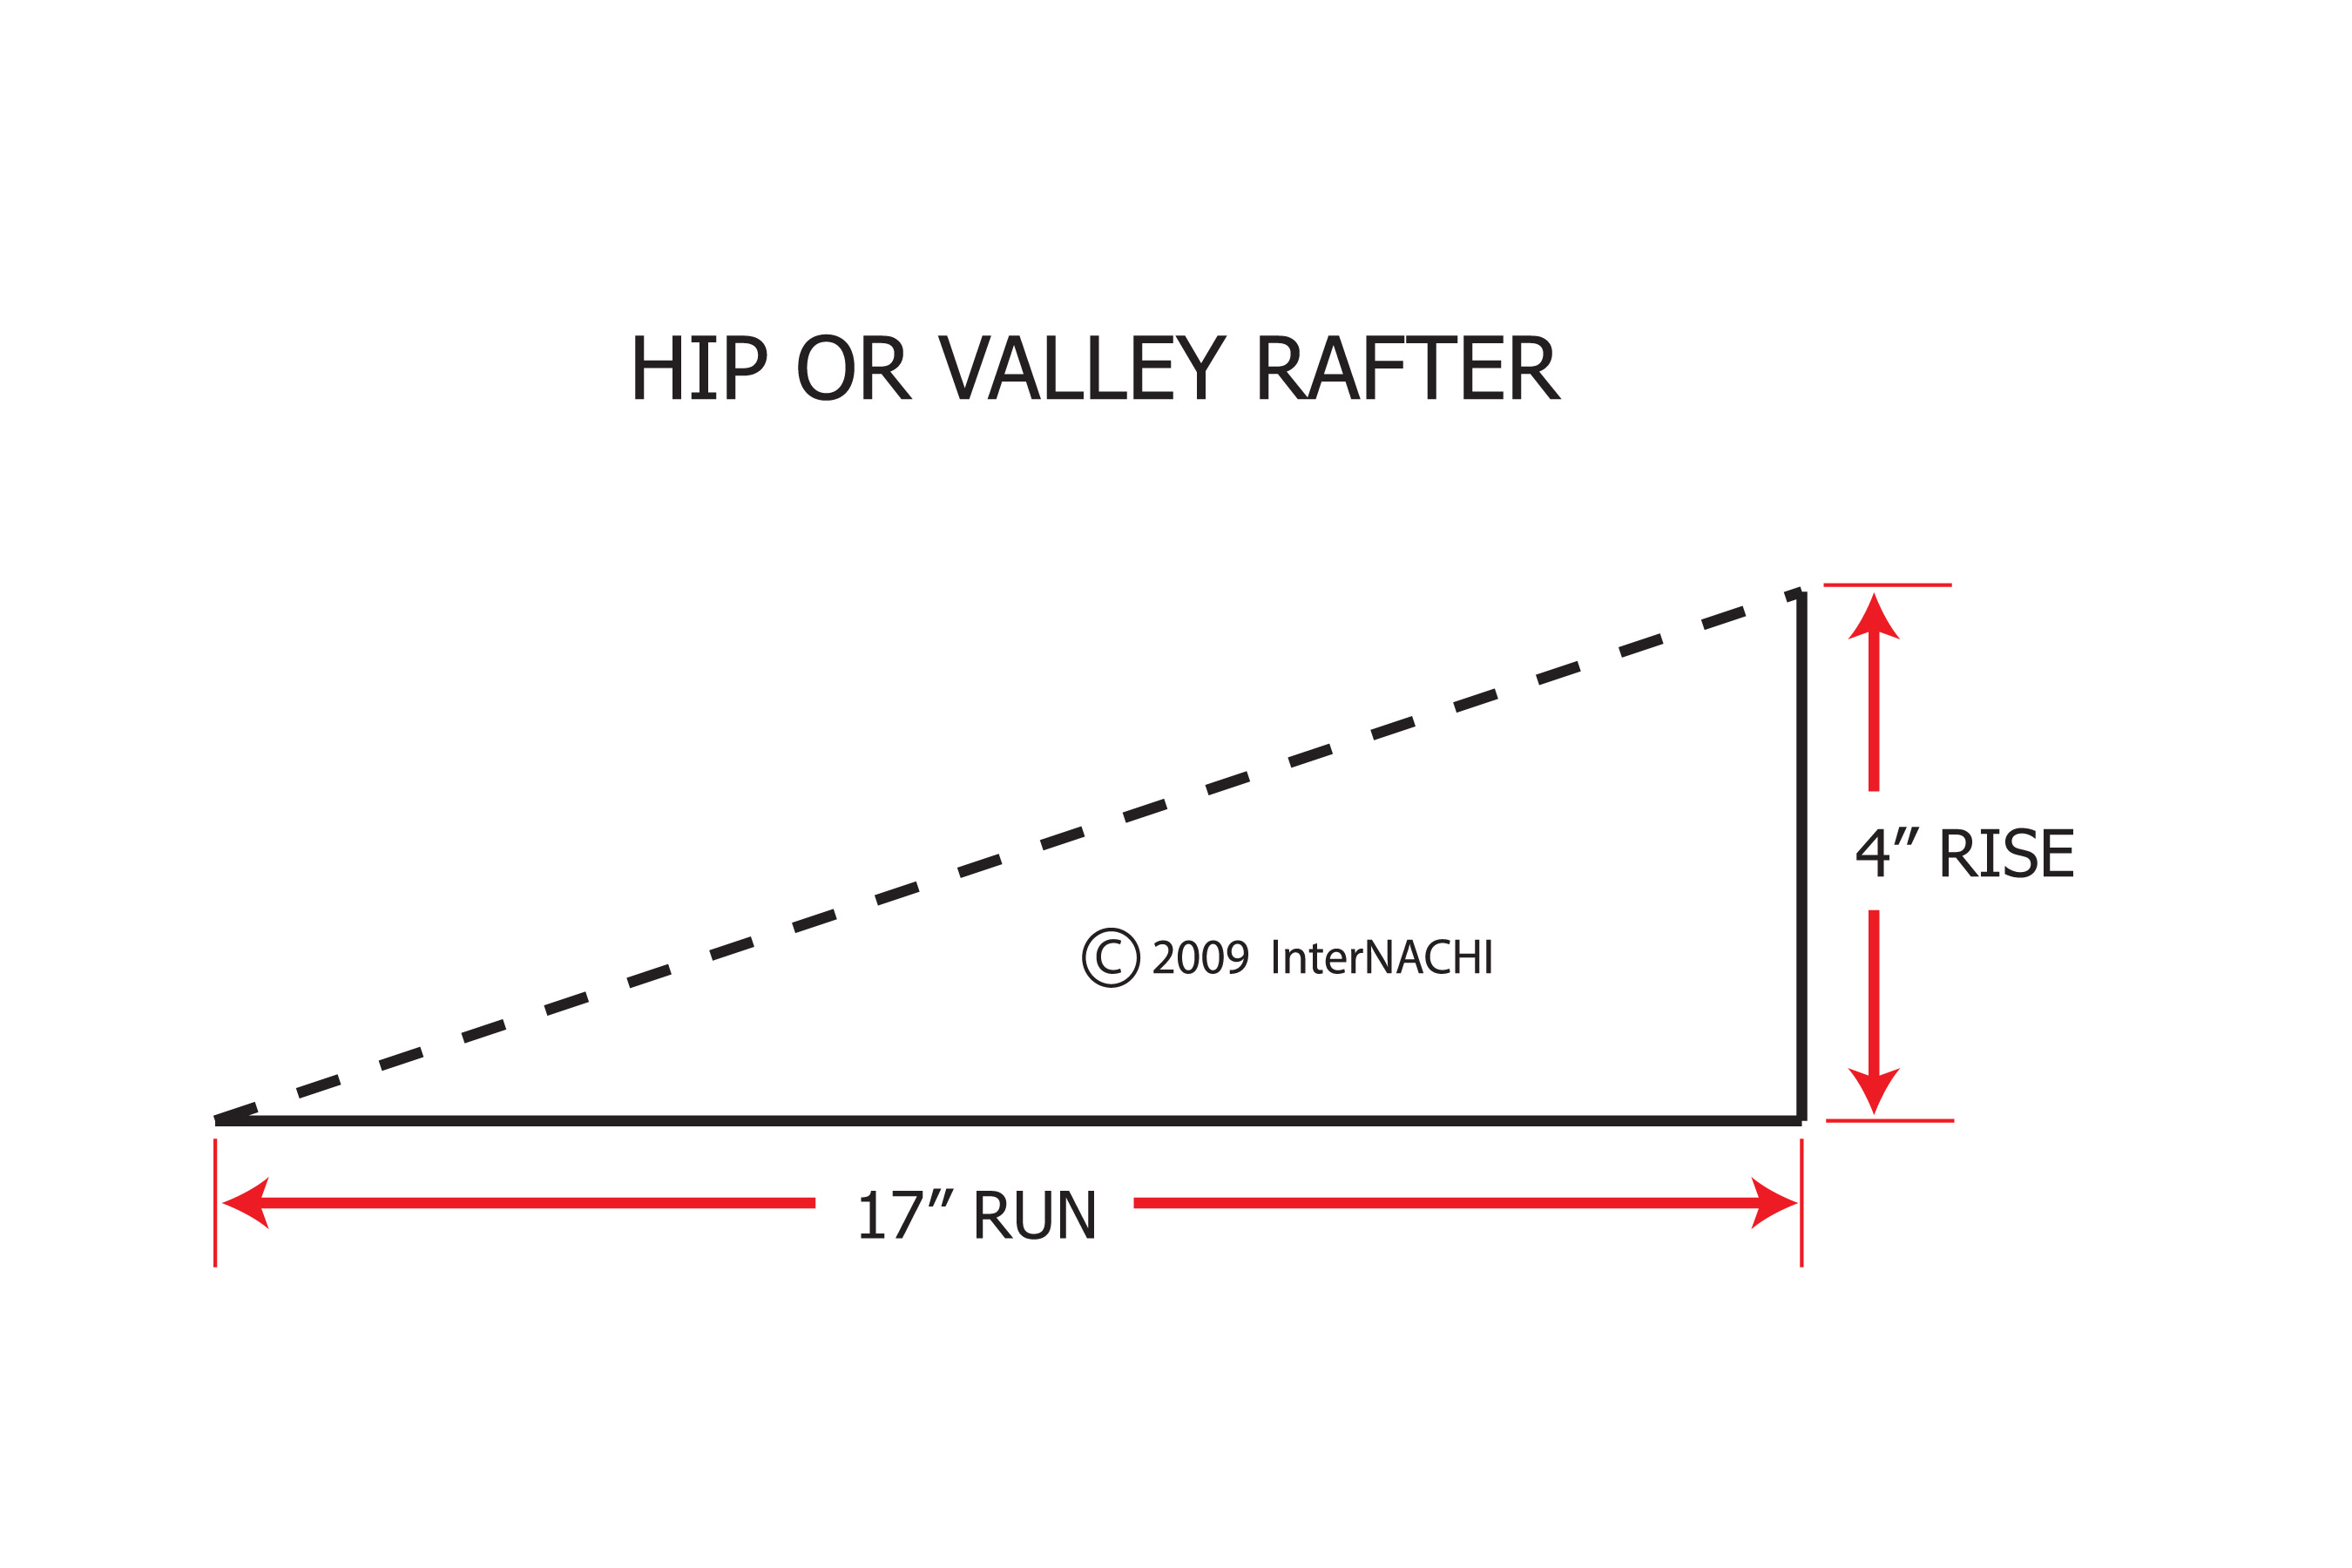 Hip or valley rafter: rise over run.